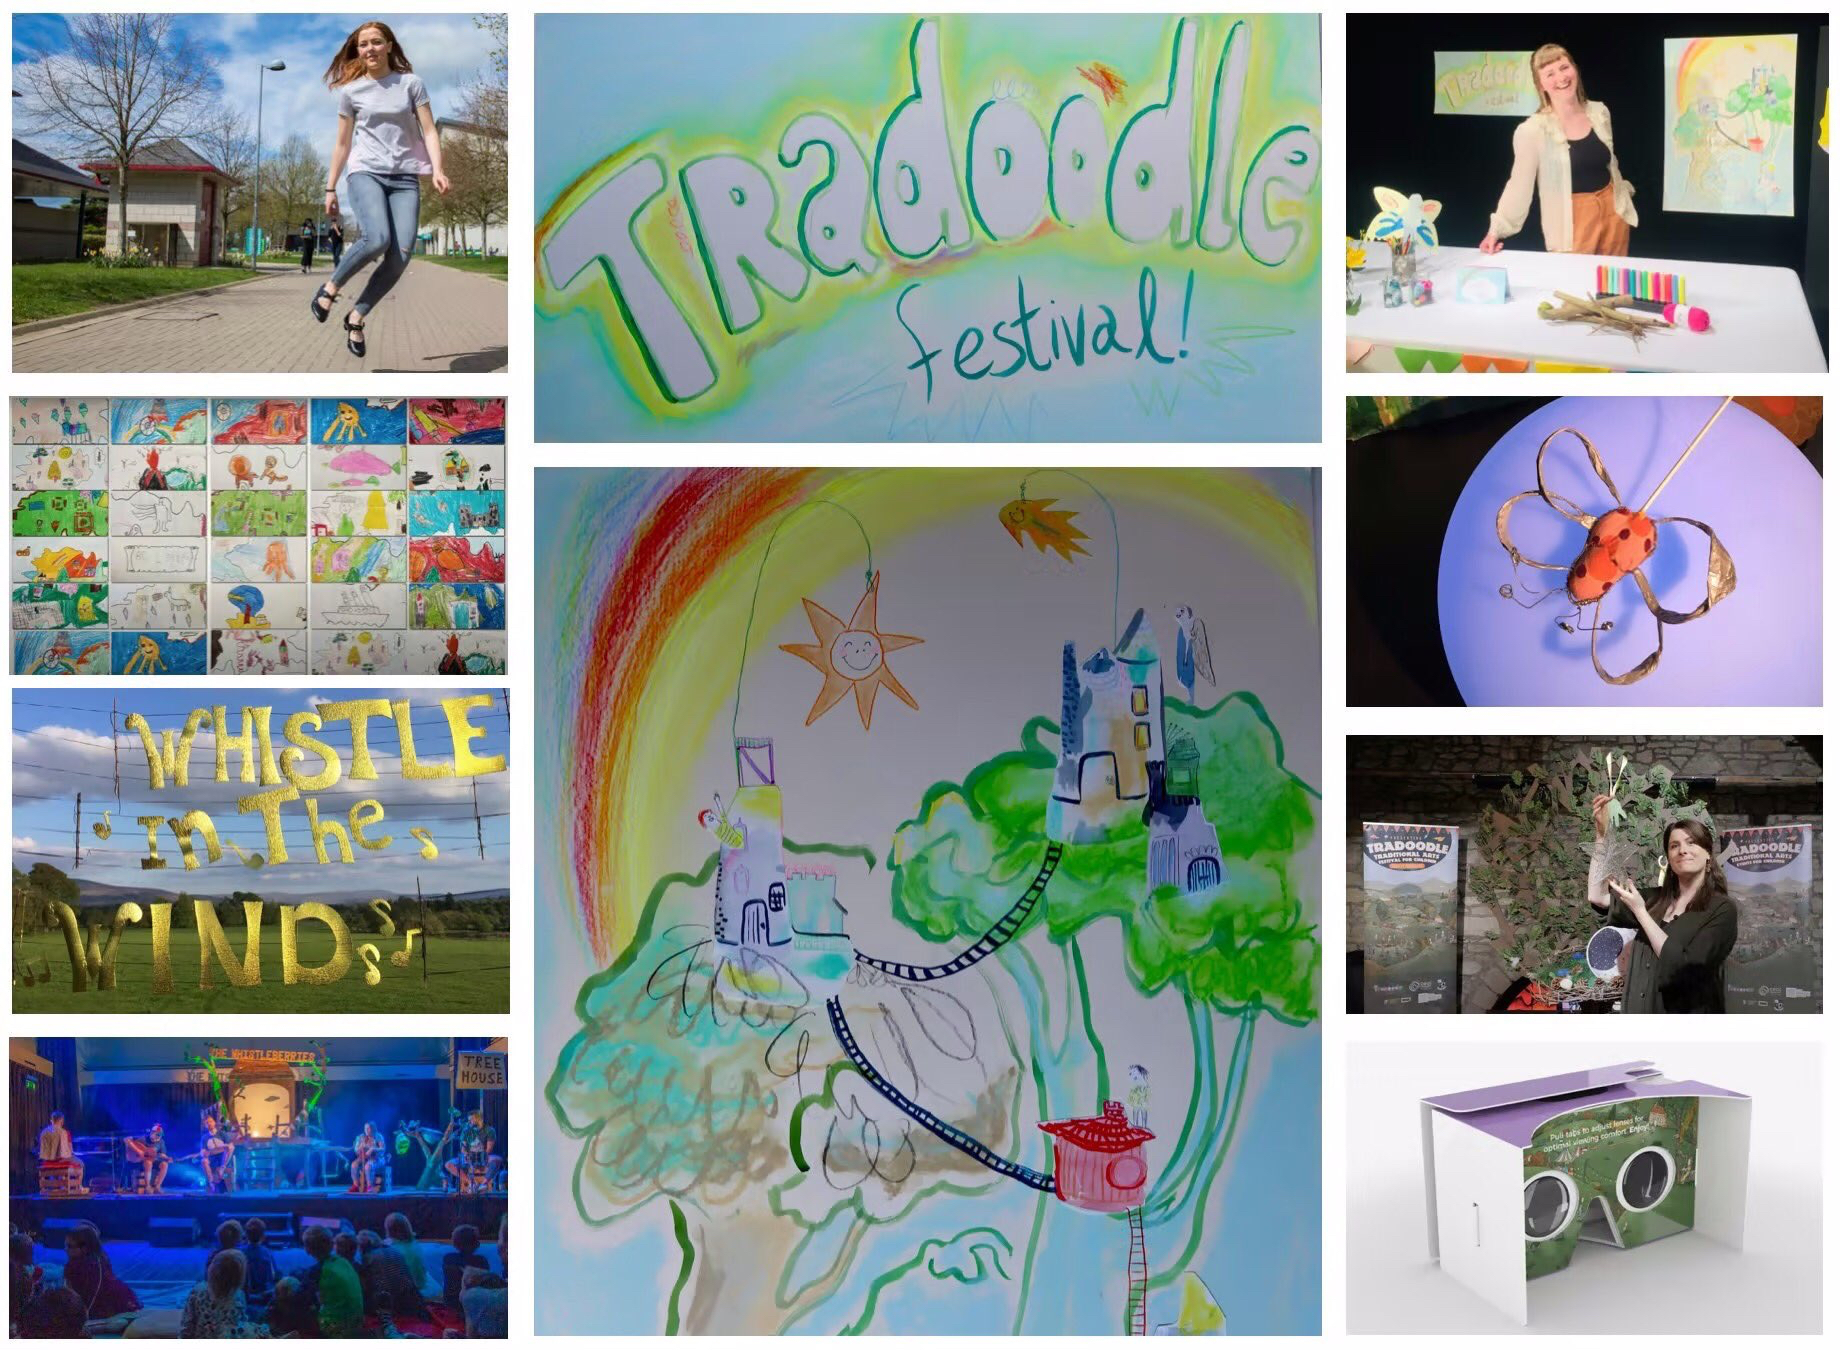 ✨Tradoodle Festival Monaghan 2020 will take place between 23-27 Nov ✨